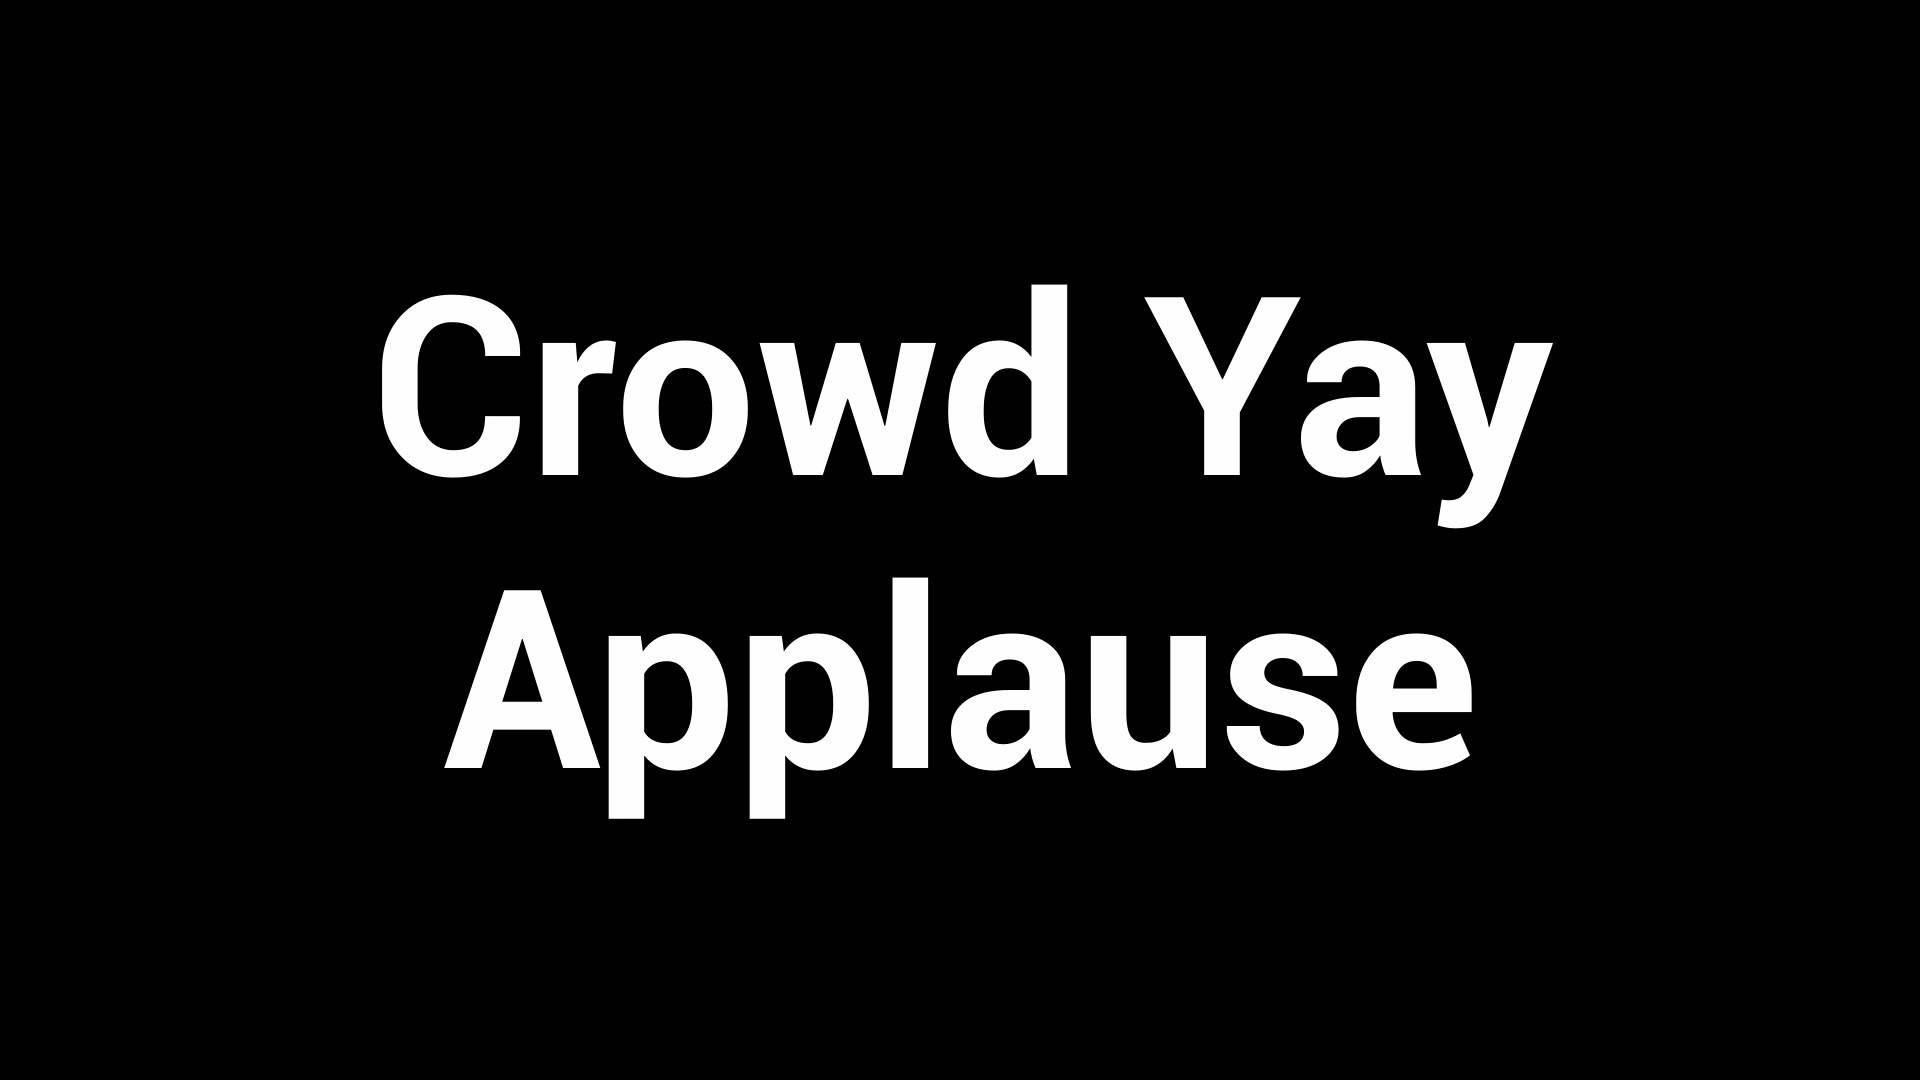 Crowd Yay Applause Sound Effect. Audio Enabled